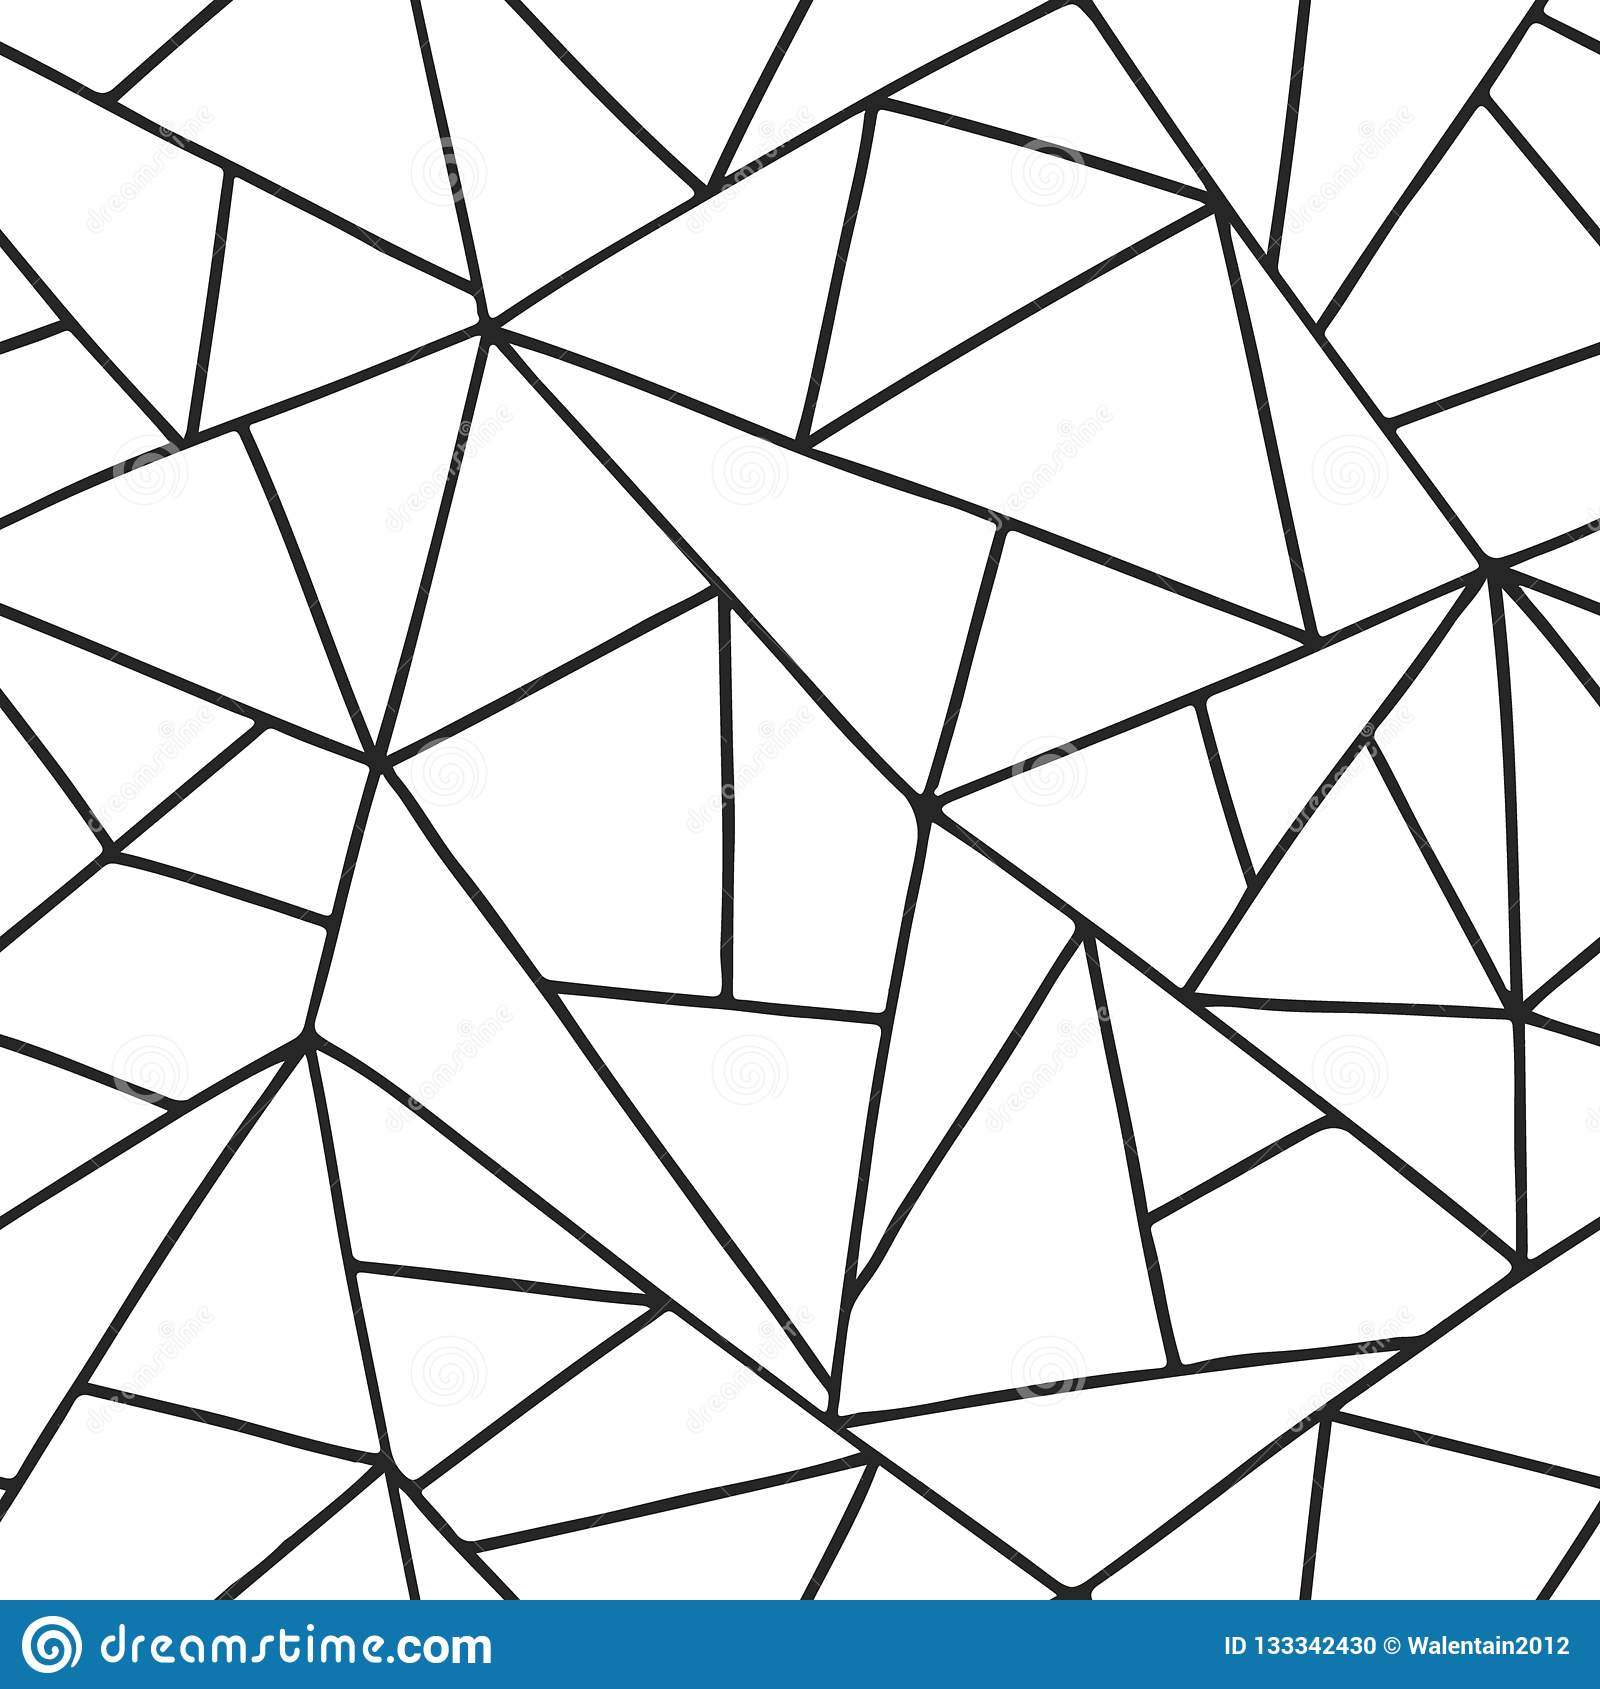 Graphic Stock Free Trial Seamless Vector Pattern Black And White Lined Asymmetric